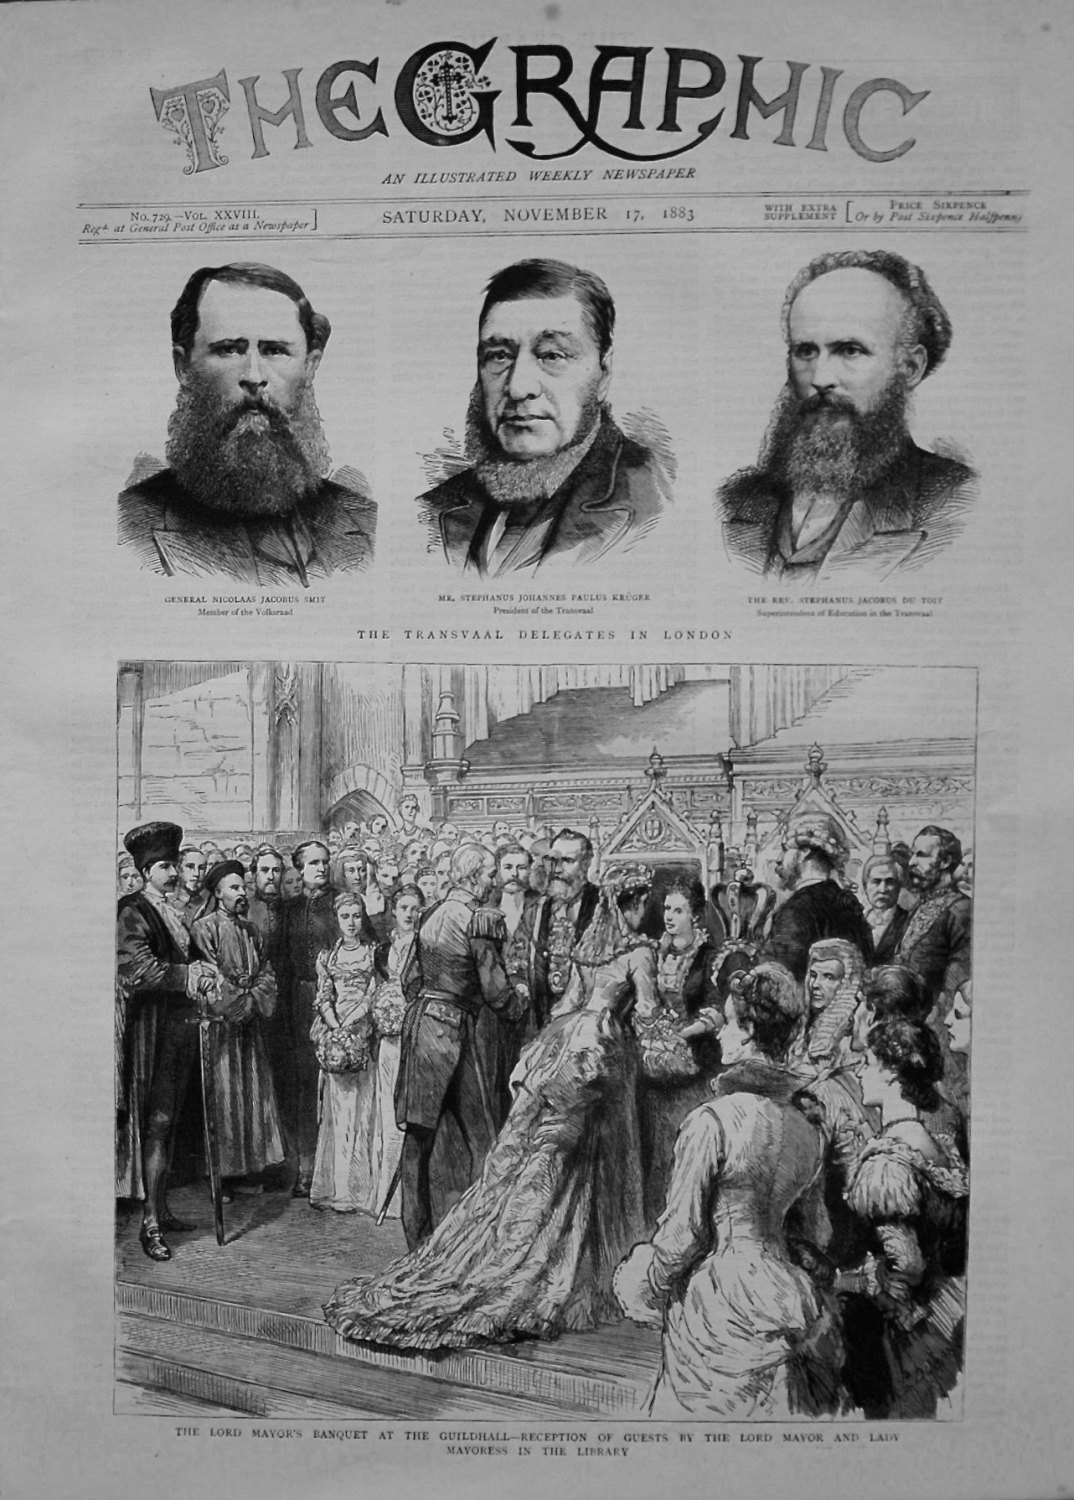 The Graphic, November 17th 1883.